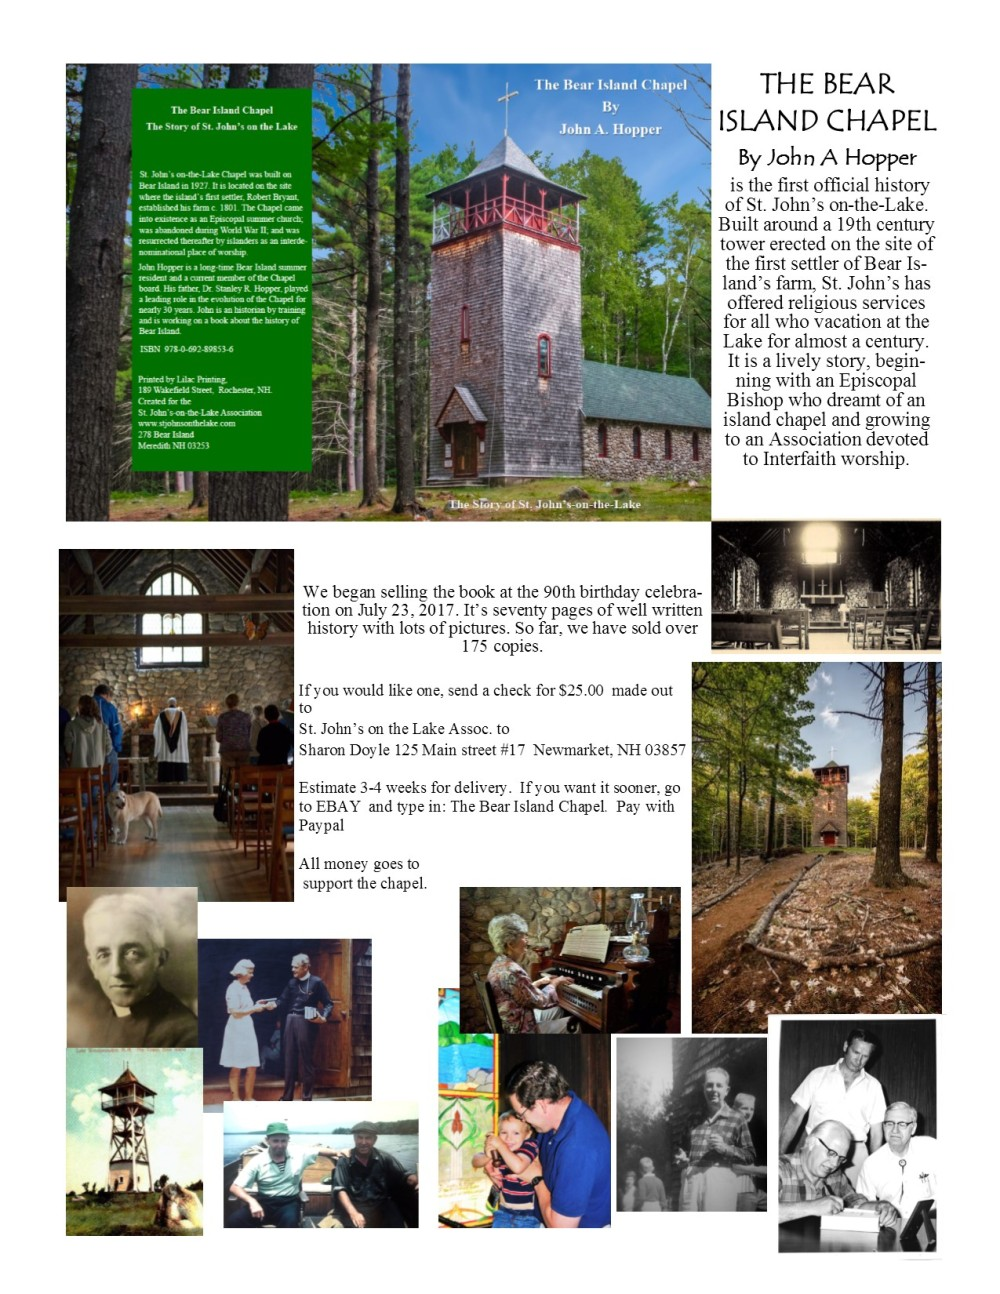 The Bear ISland Chapel Webpage portraits